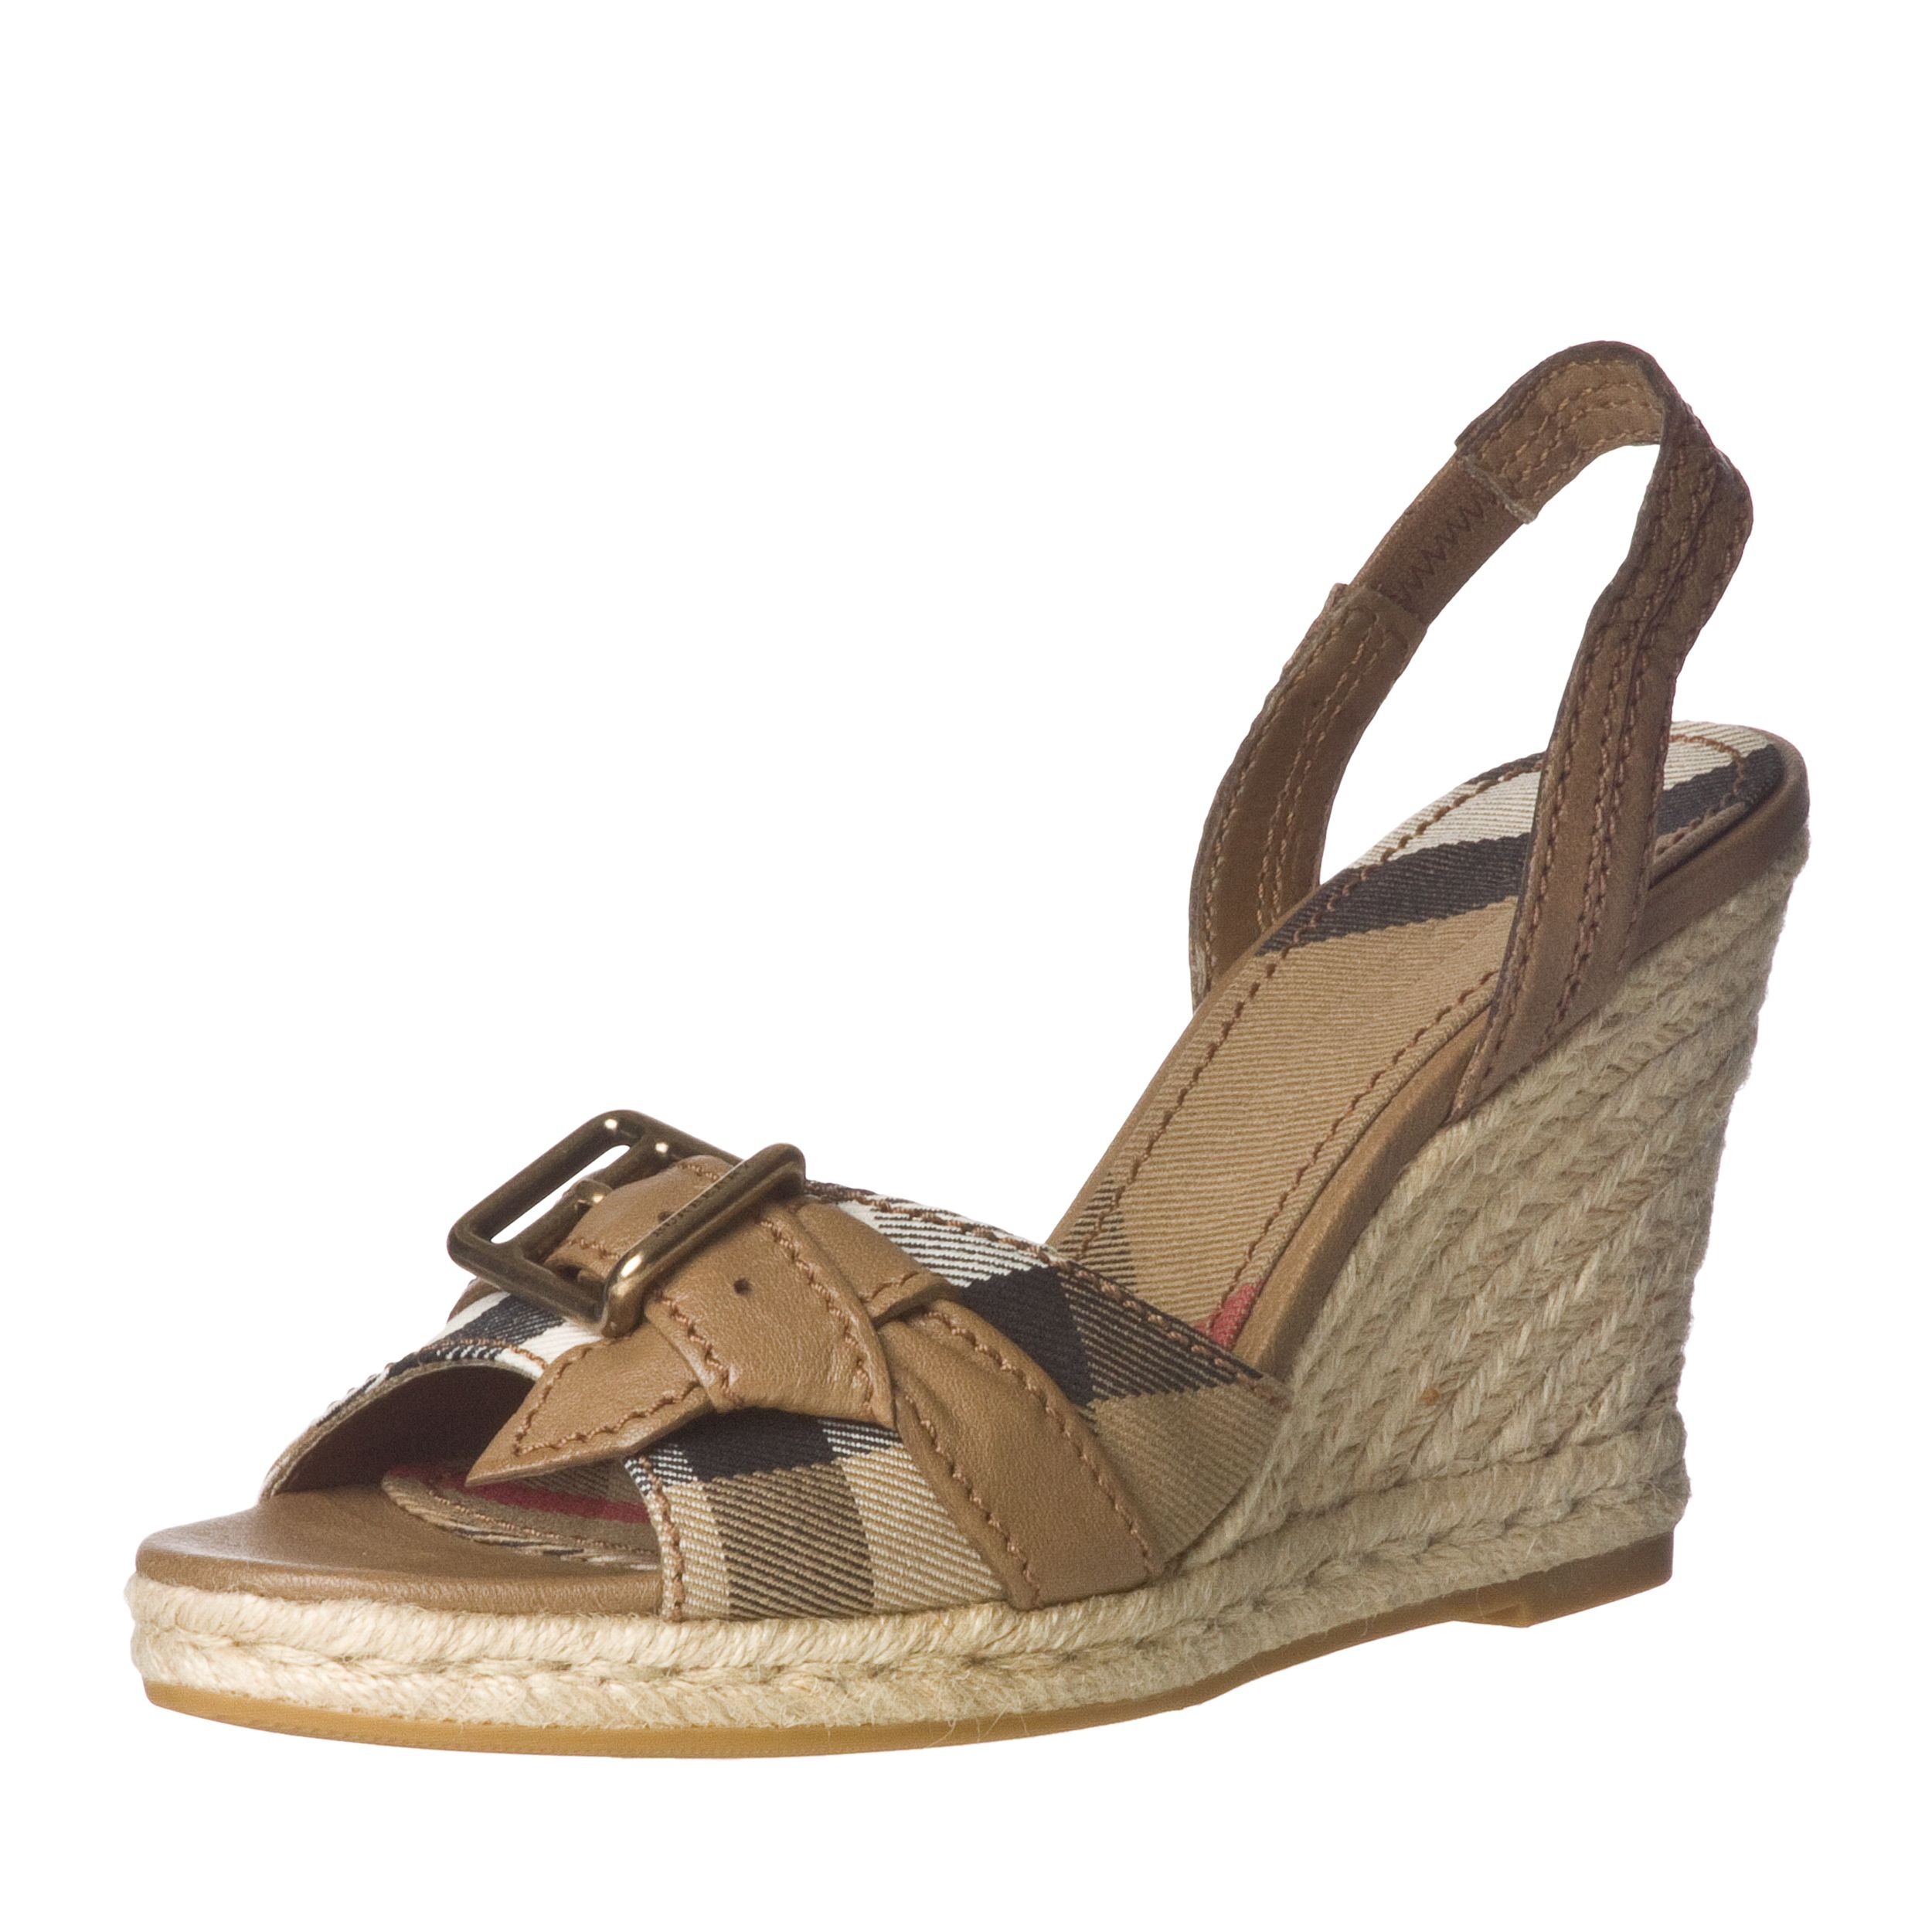 These designer sling-back wedges by Burberry feature a beautiful leather and cotton construction topped with a brass buckle. The 4-inch heel is covered in espadrille rope while the toe strap is printed with the signature check pattern.